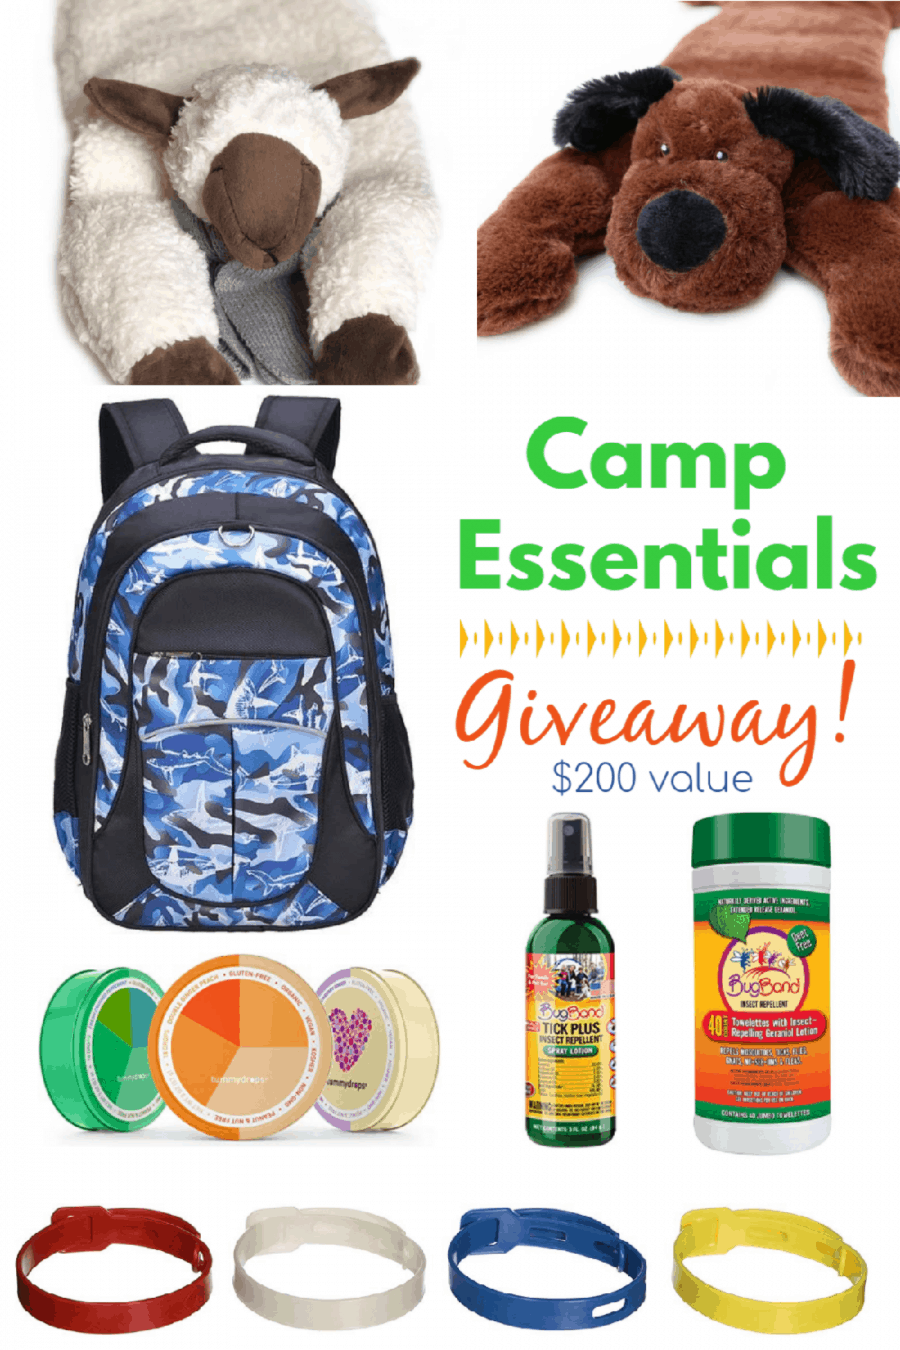 Camp Essentials Giveaway! Enter to win a variety of gear, valued at almost $200!